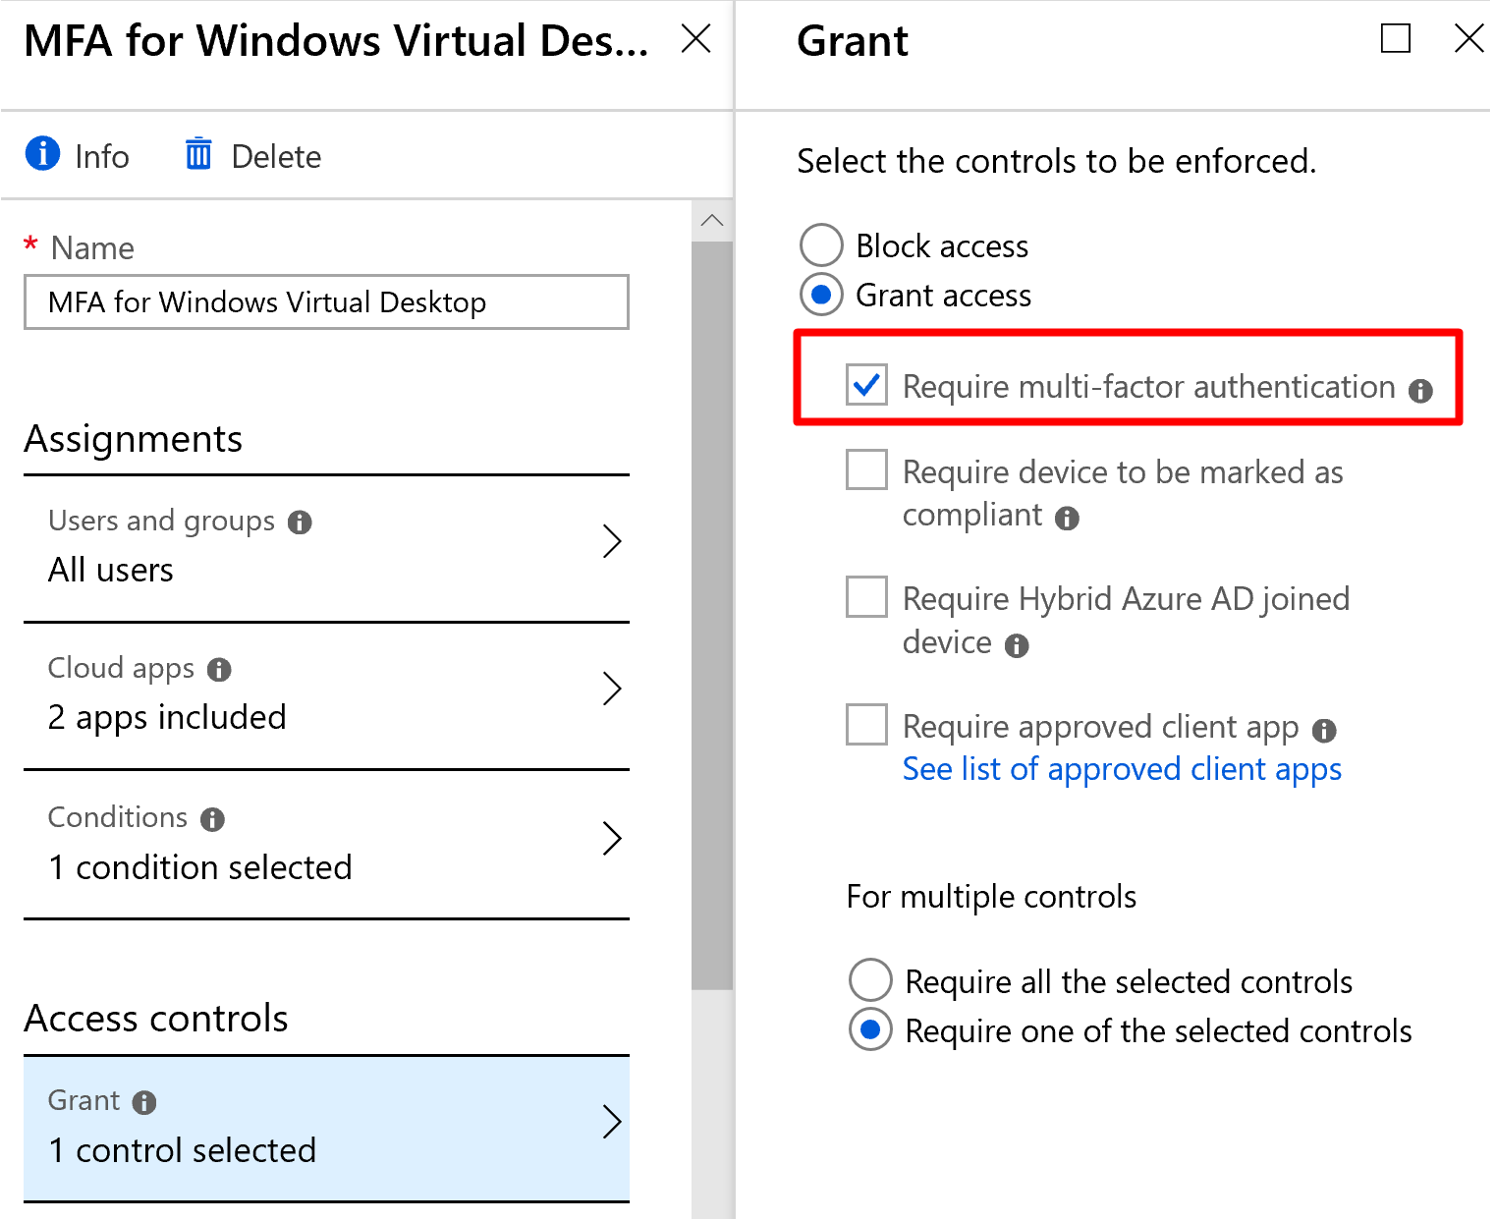 Windows Virtual Desktop with MFA Grant Access Screen